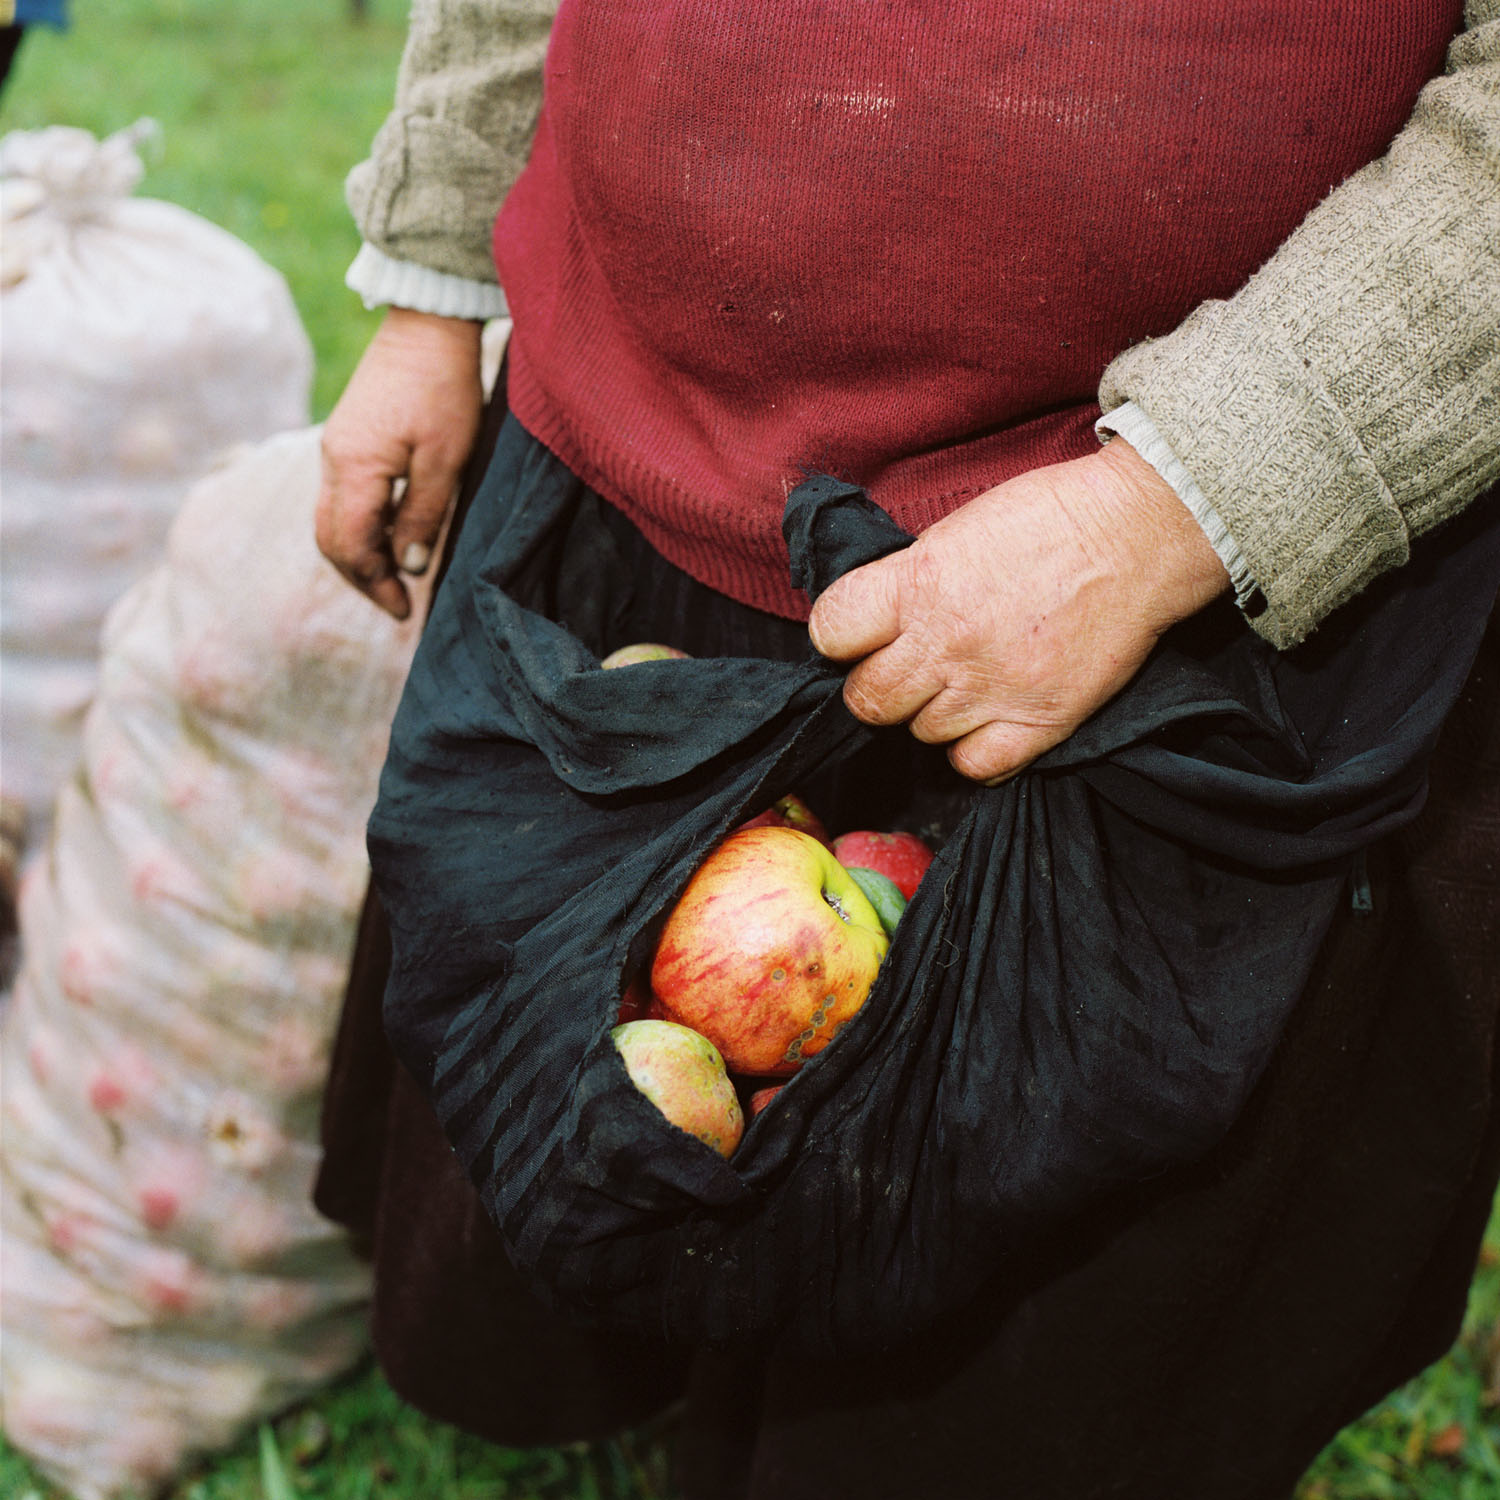 Collecting Apples (2005)